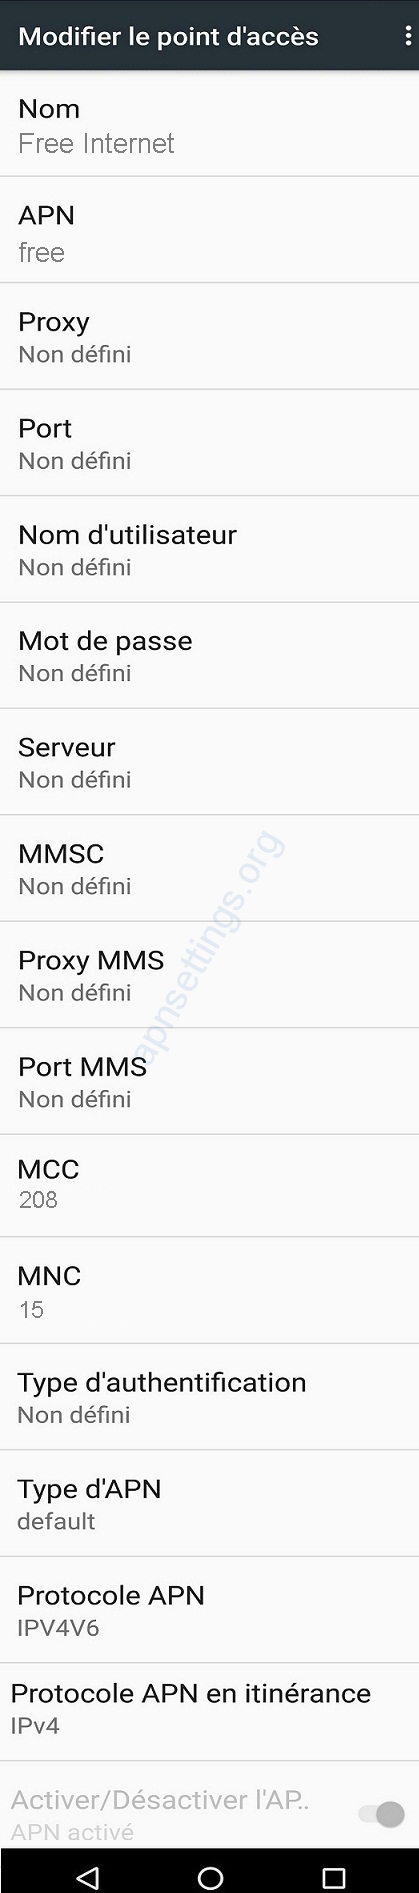 Configuration Internet Free Mobile sur Android HTC Samsung